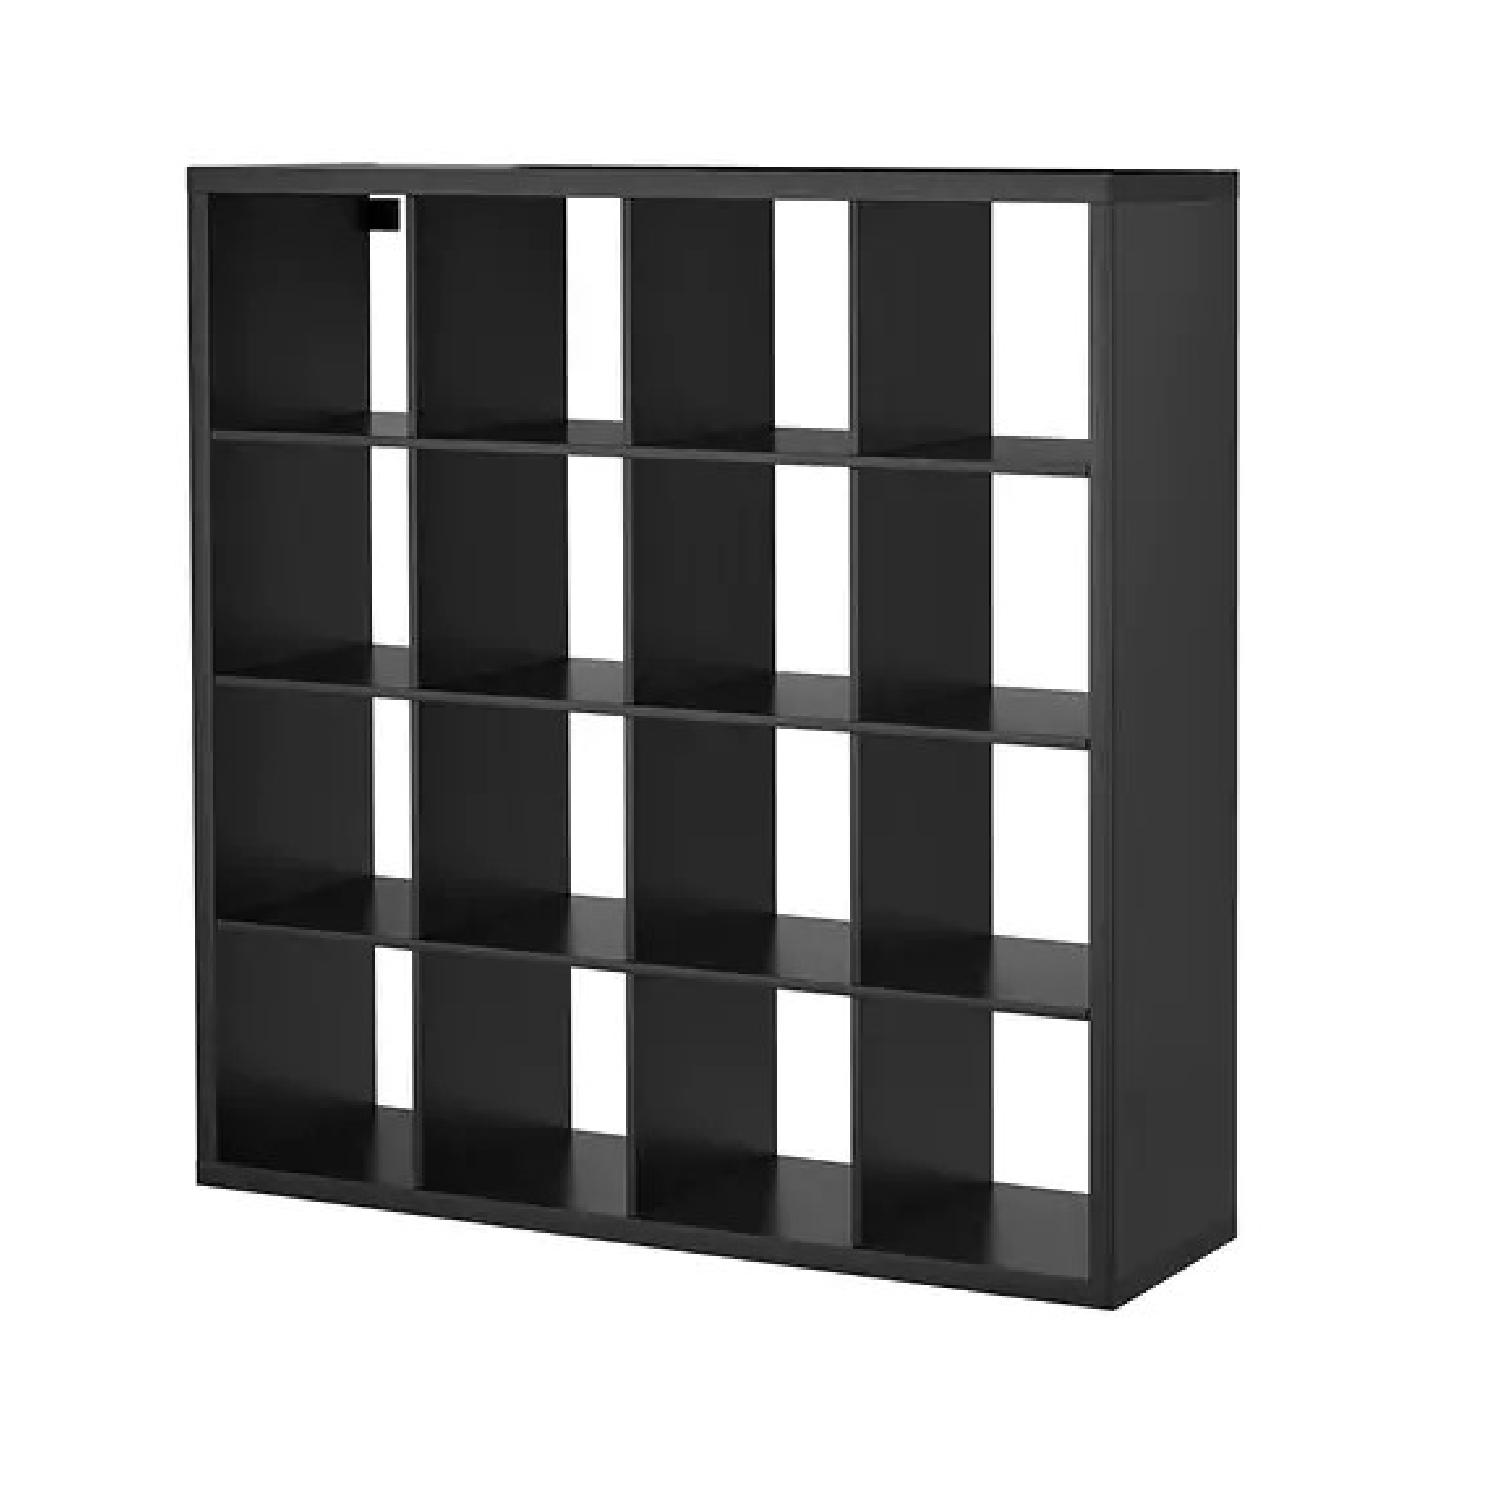 Ikea Kallax Shelving Unit/Room Divider